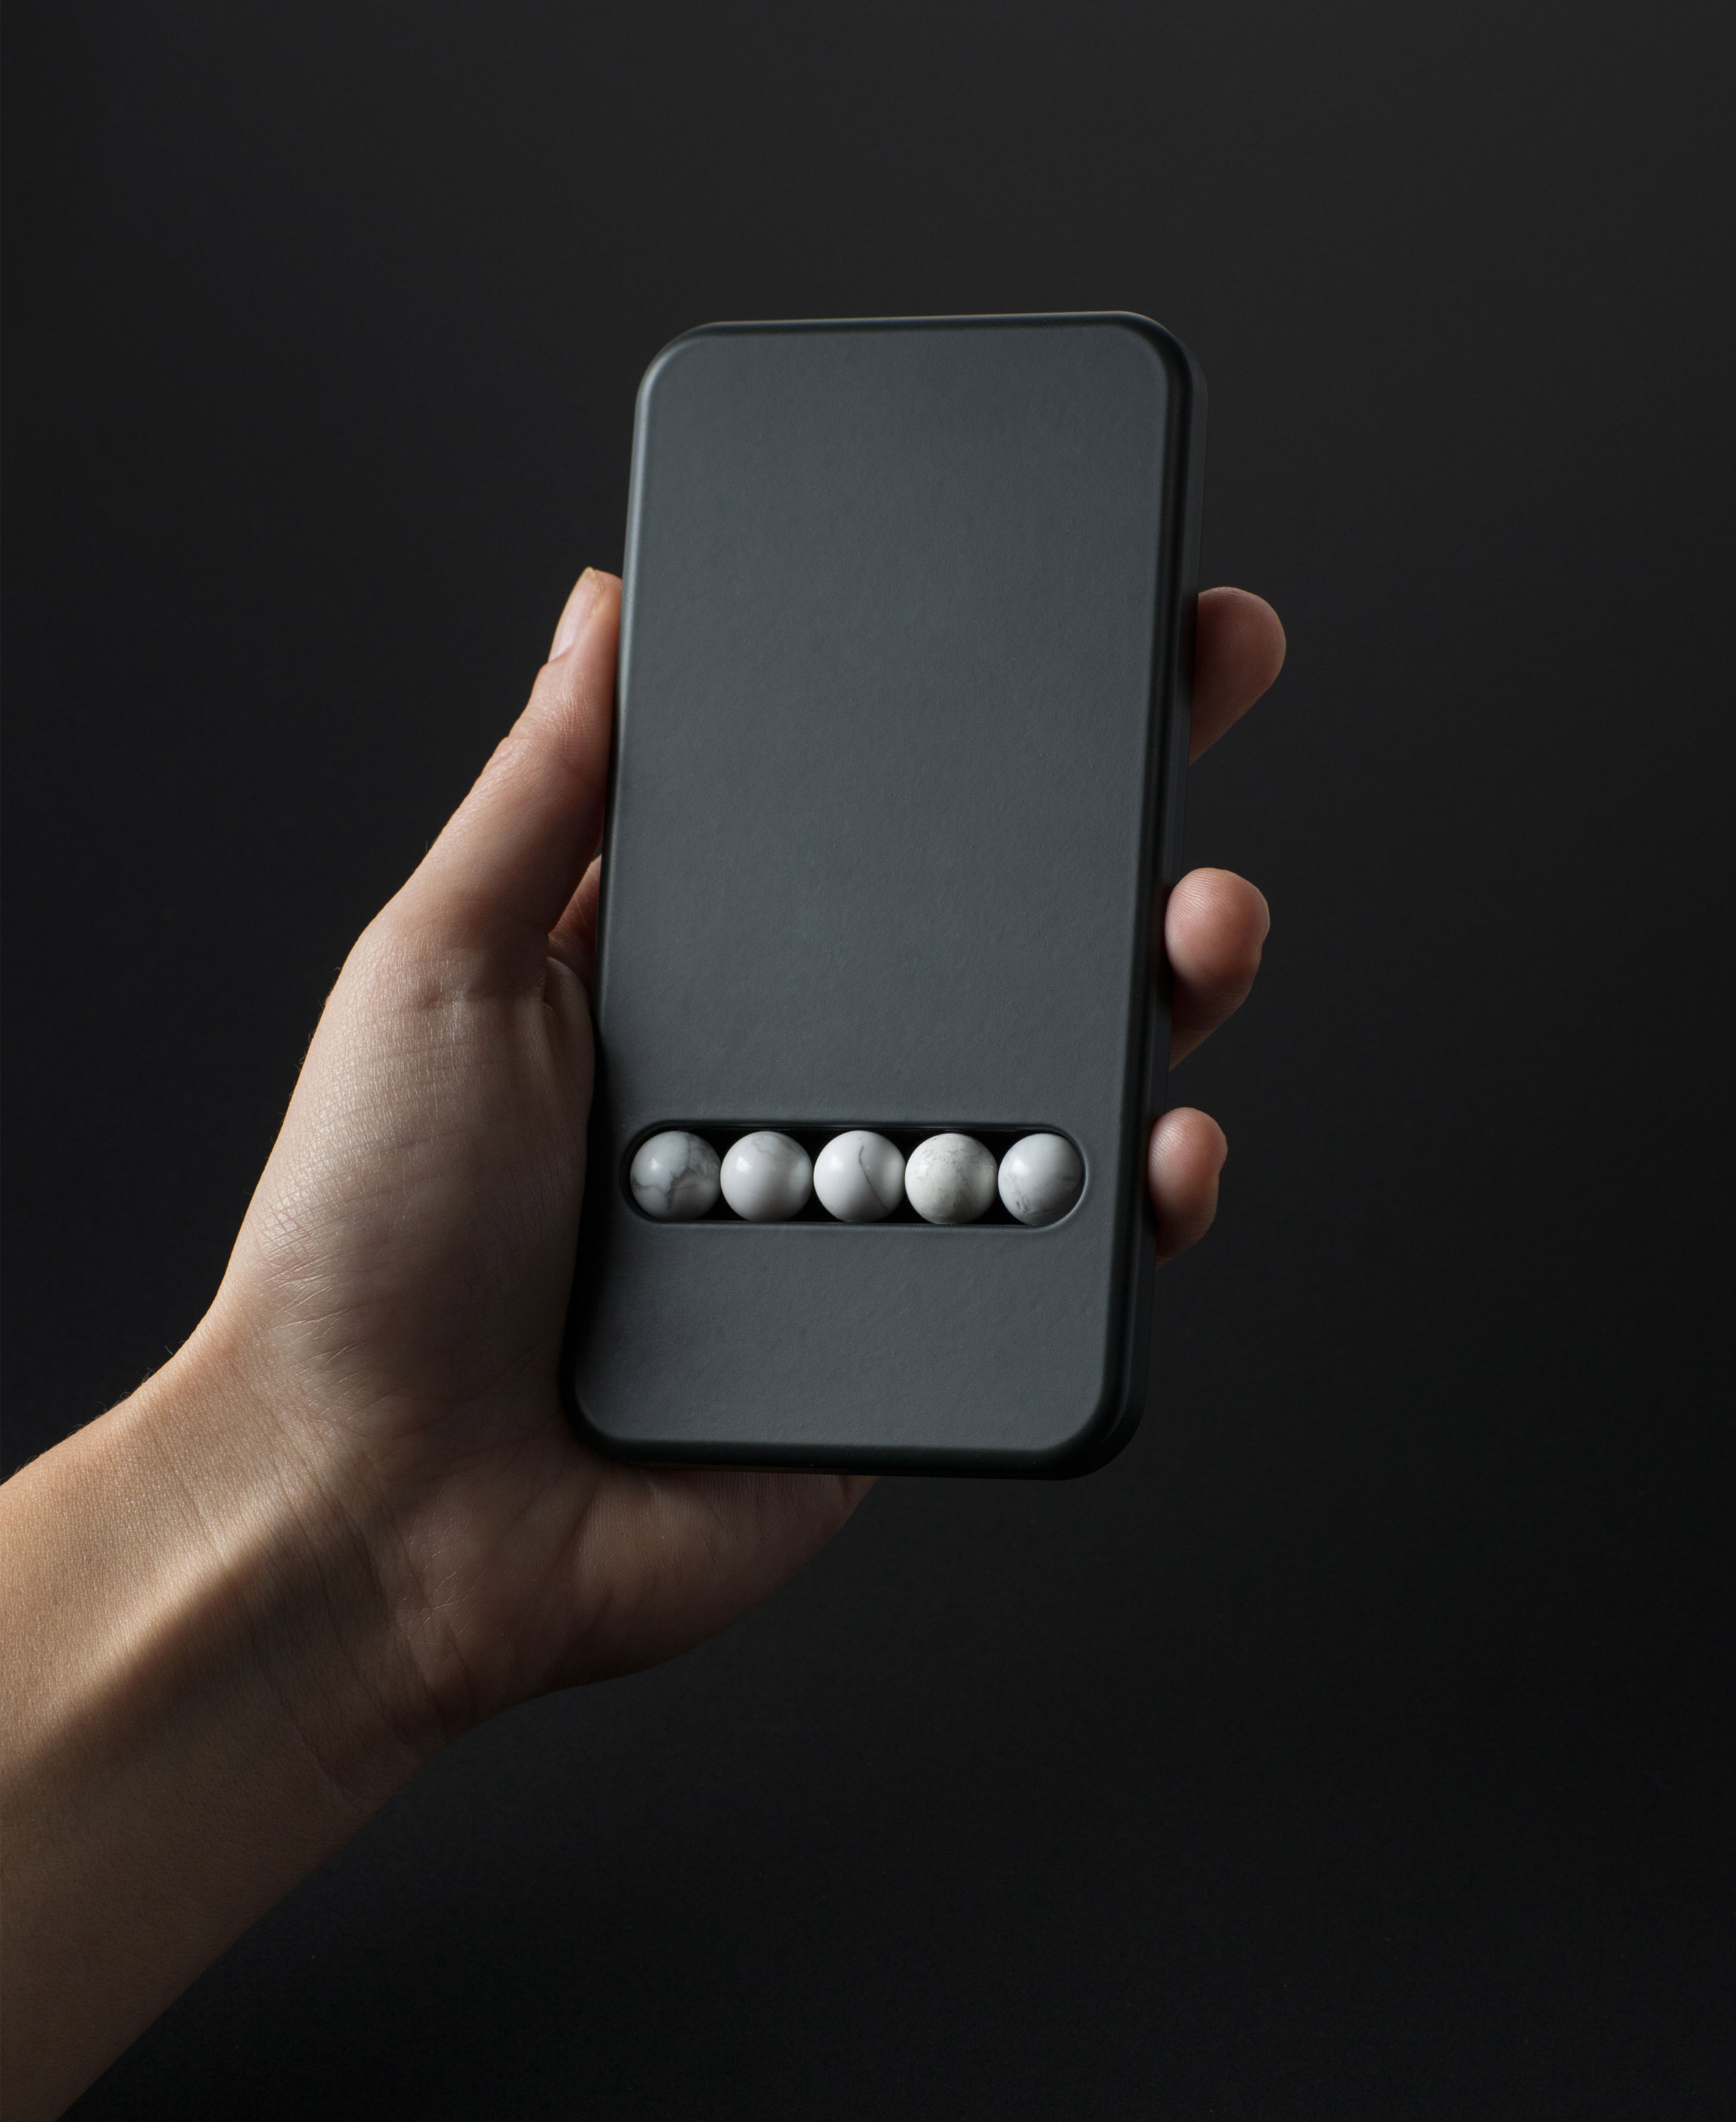 Klemens Schillinger's Substitute Phone is designed to overcome smartphone addiction